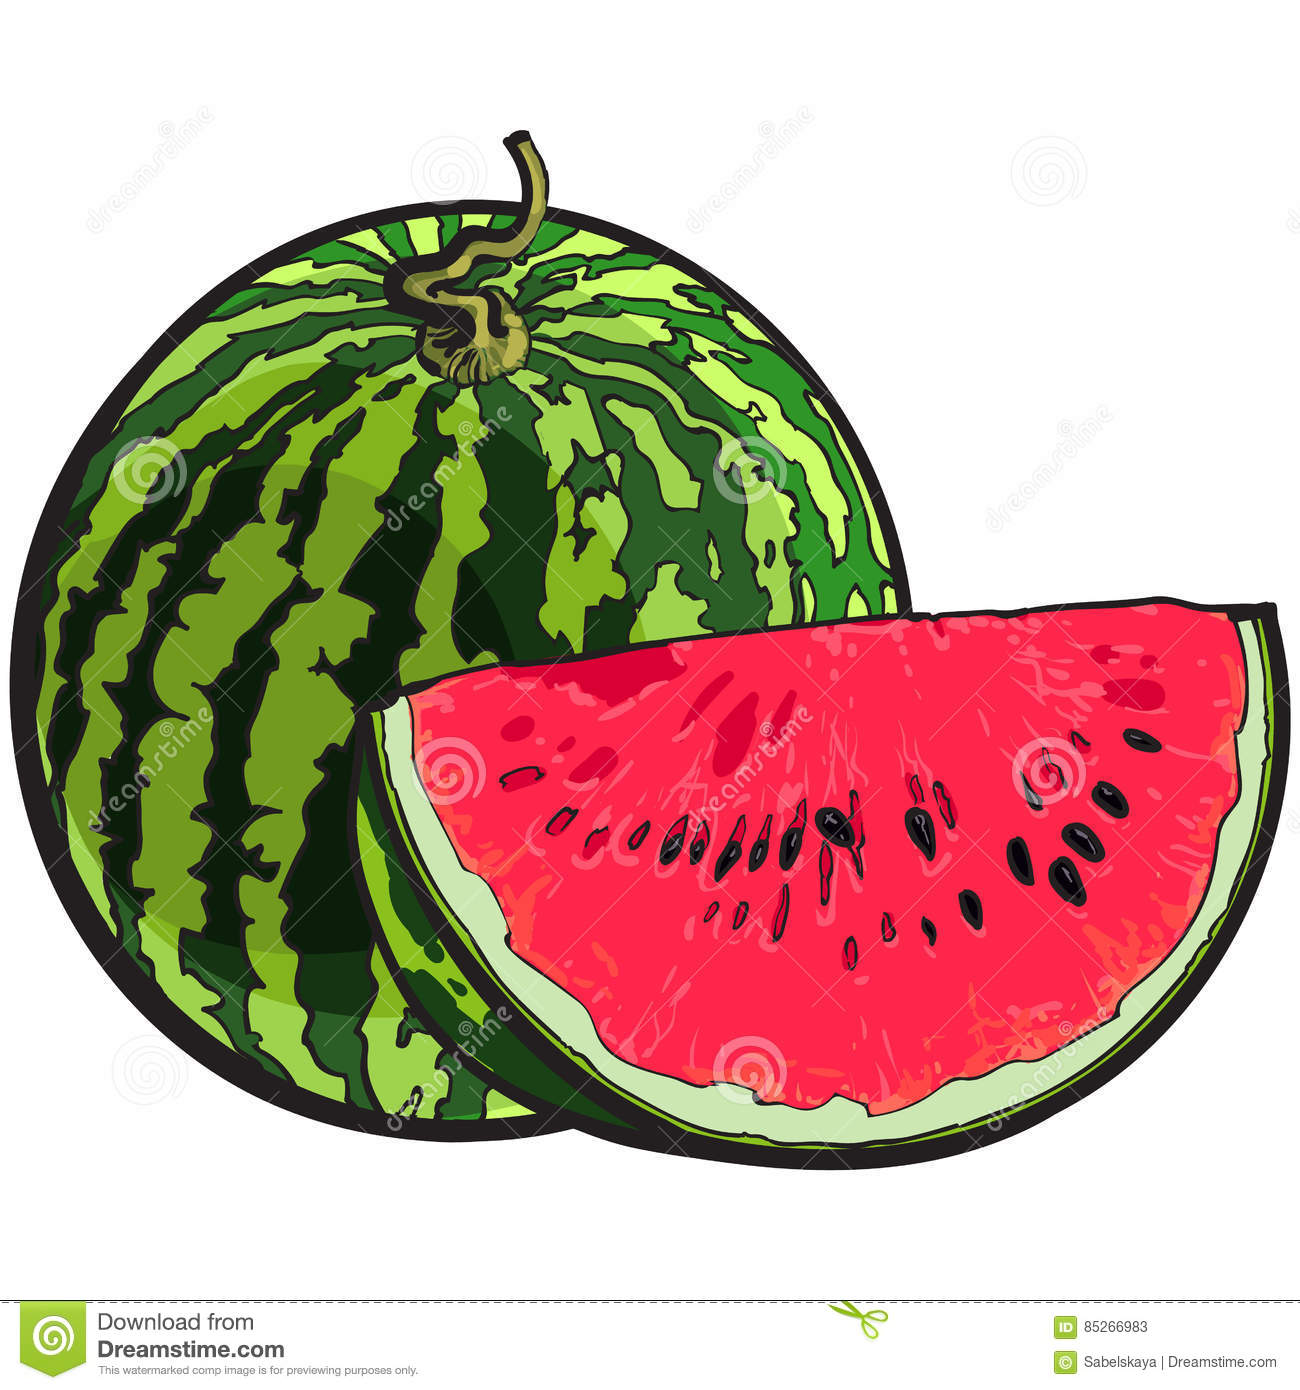 Whole watermelon and red slice with black seeds, sketch illustration